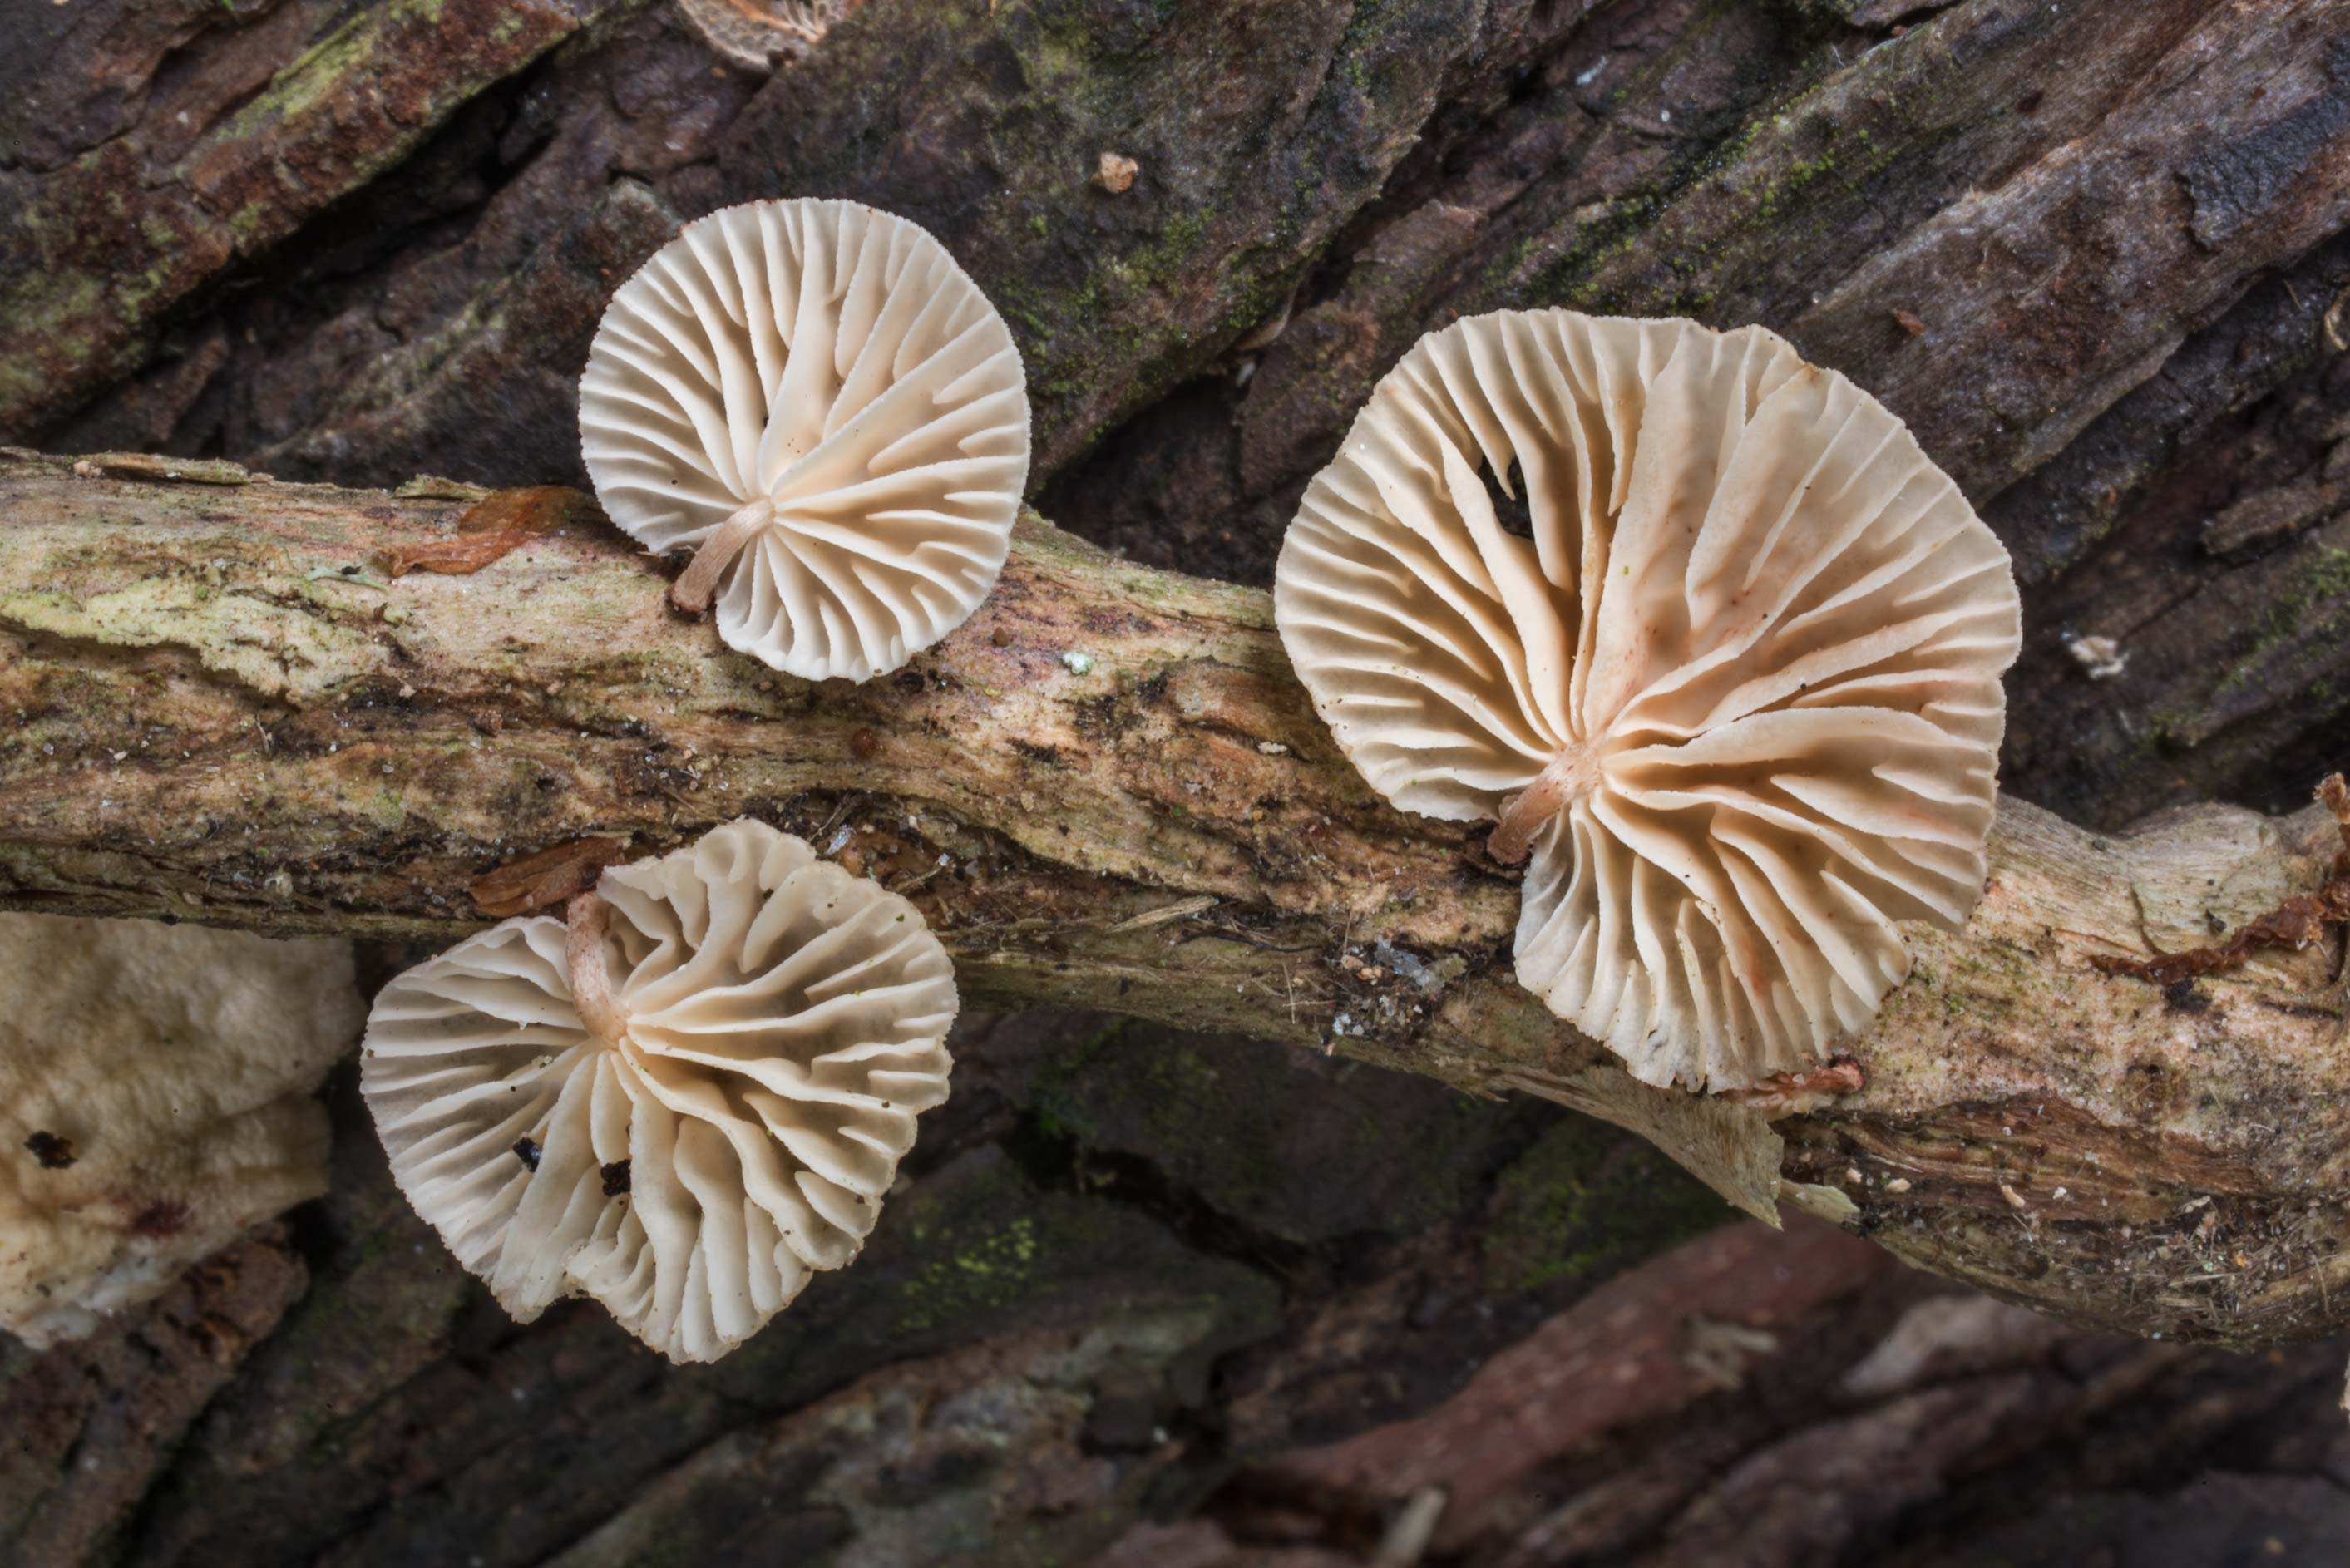 Gills of Marasmiellus subsect. Inodermini...Creek Park. College Station, Texas